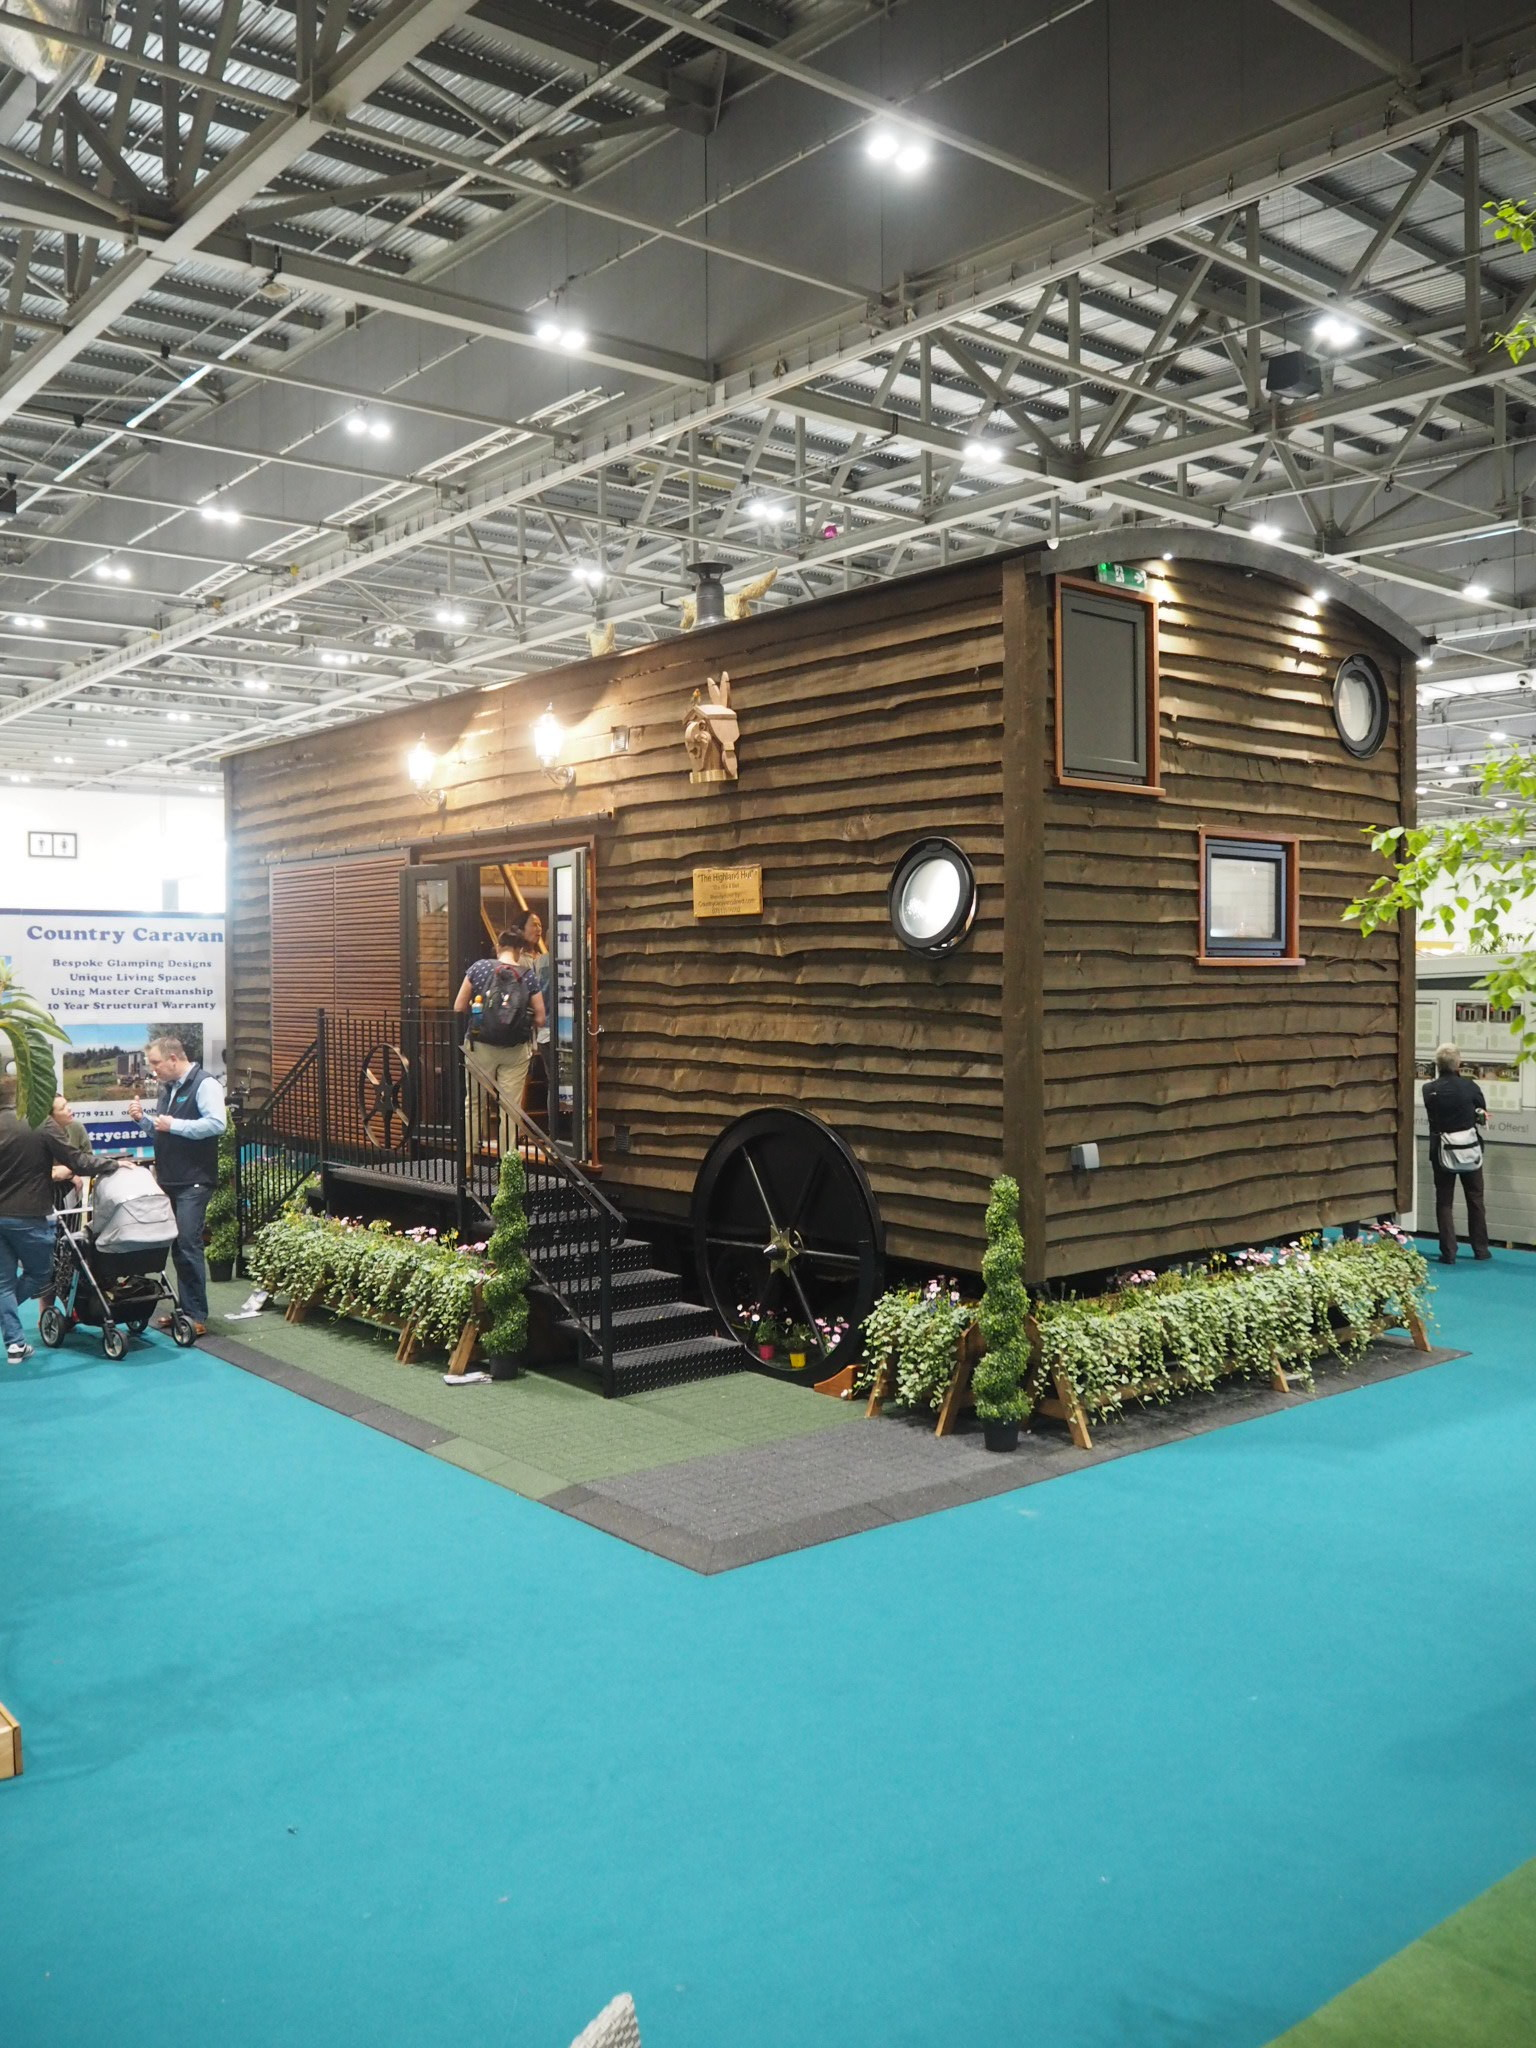 A very big man shed. How are they going to find their spanner in there?